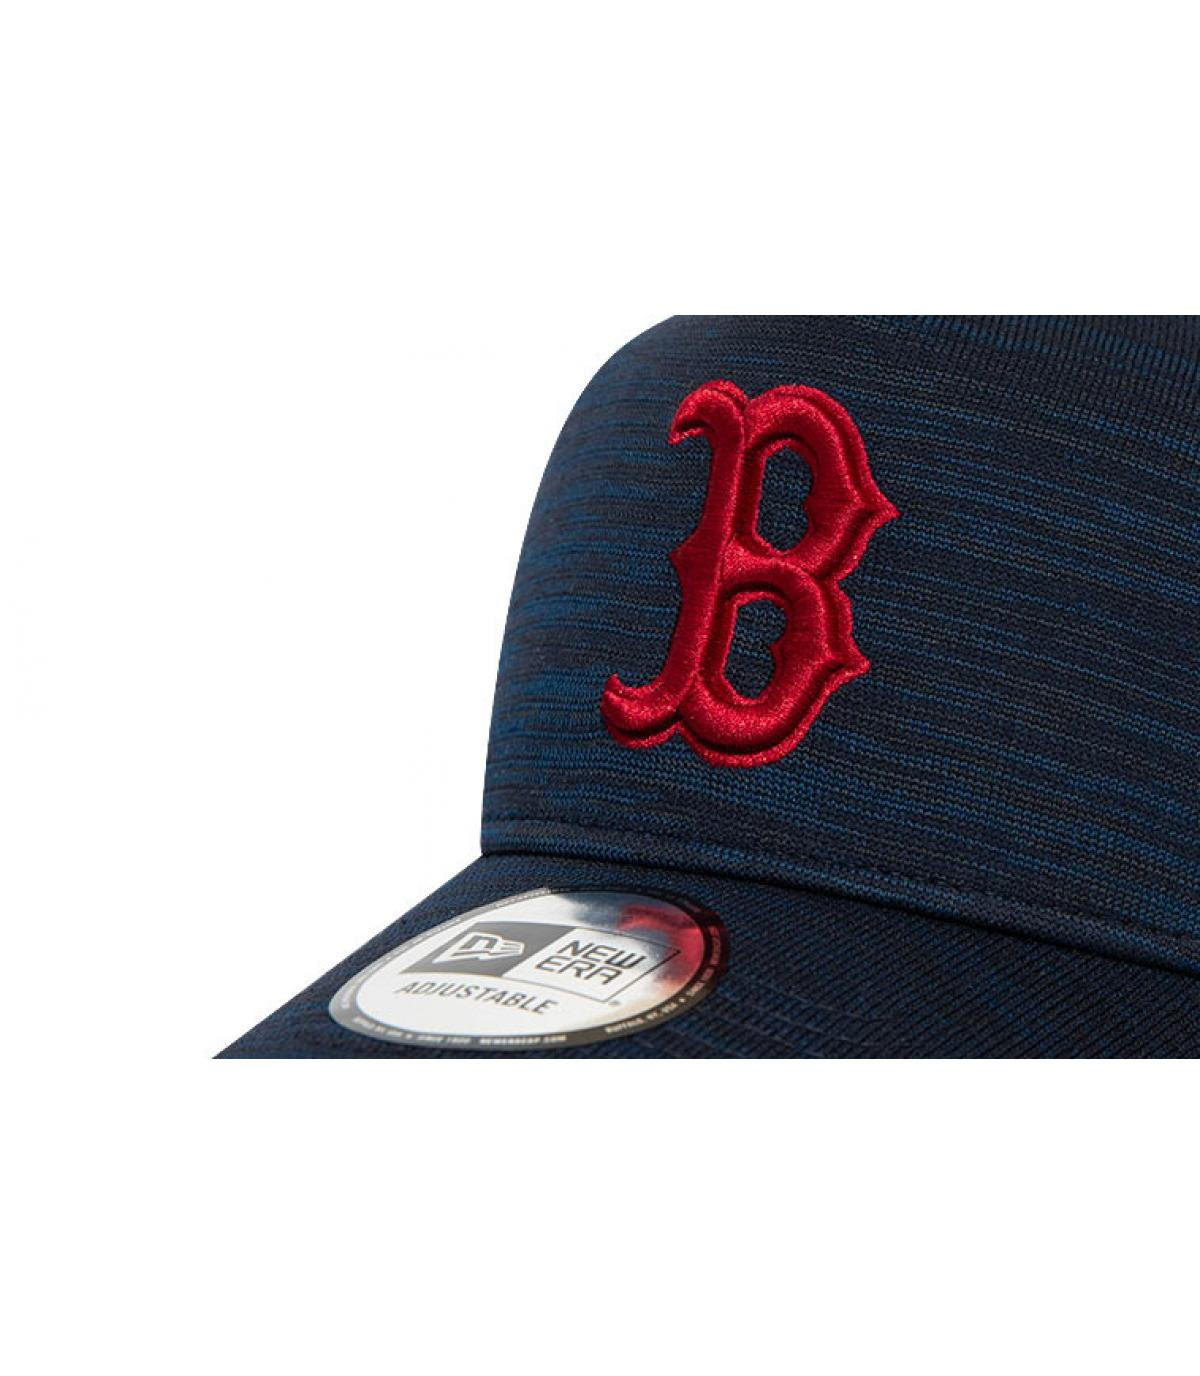 Détails Casquette Engineered Fit Boston Aframe navy cardinal - image 3